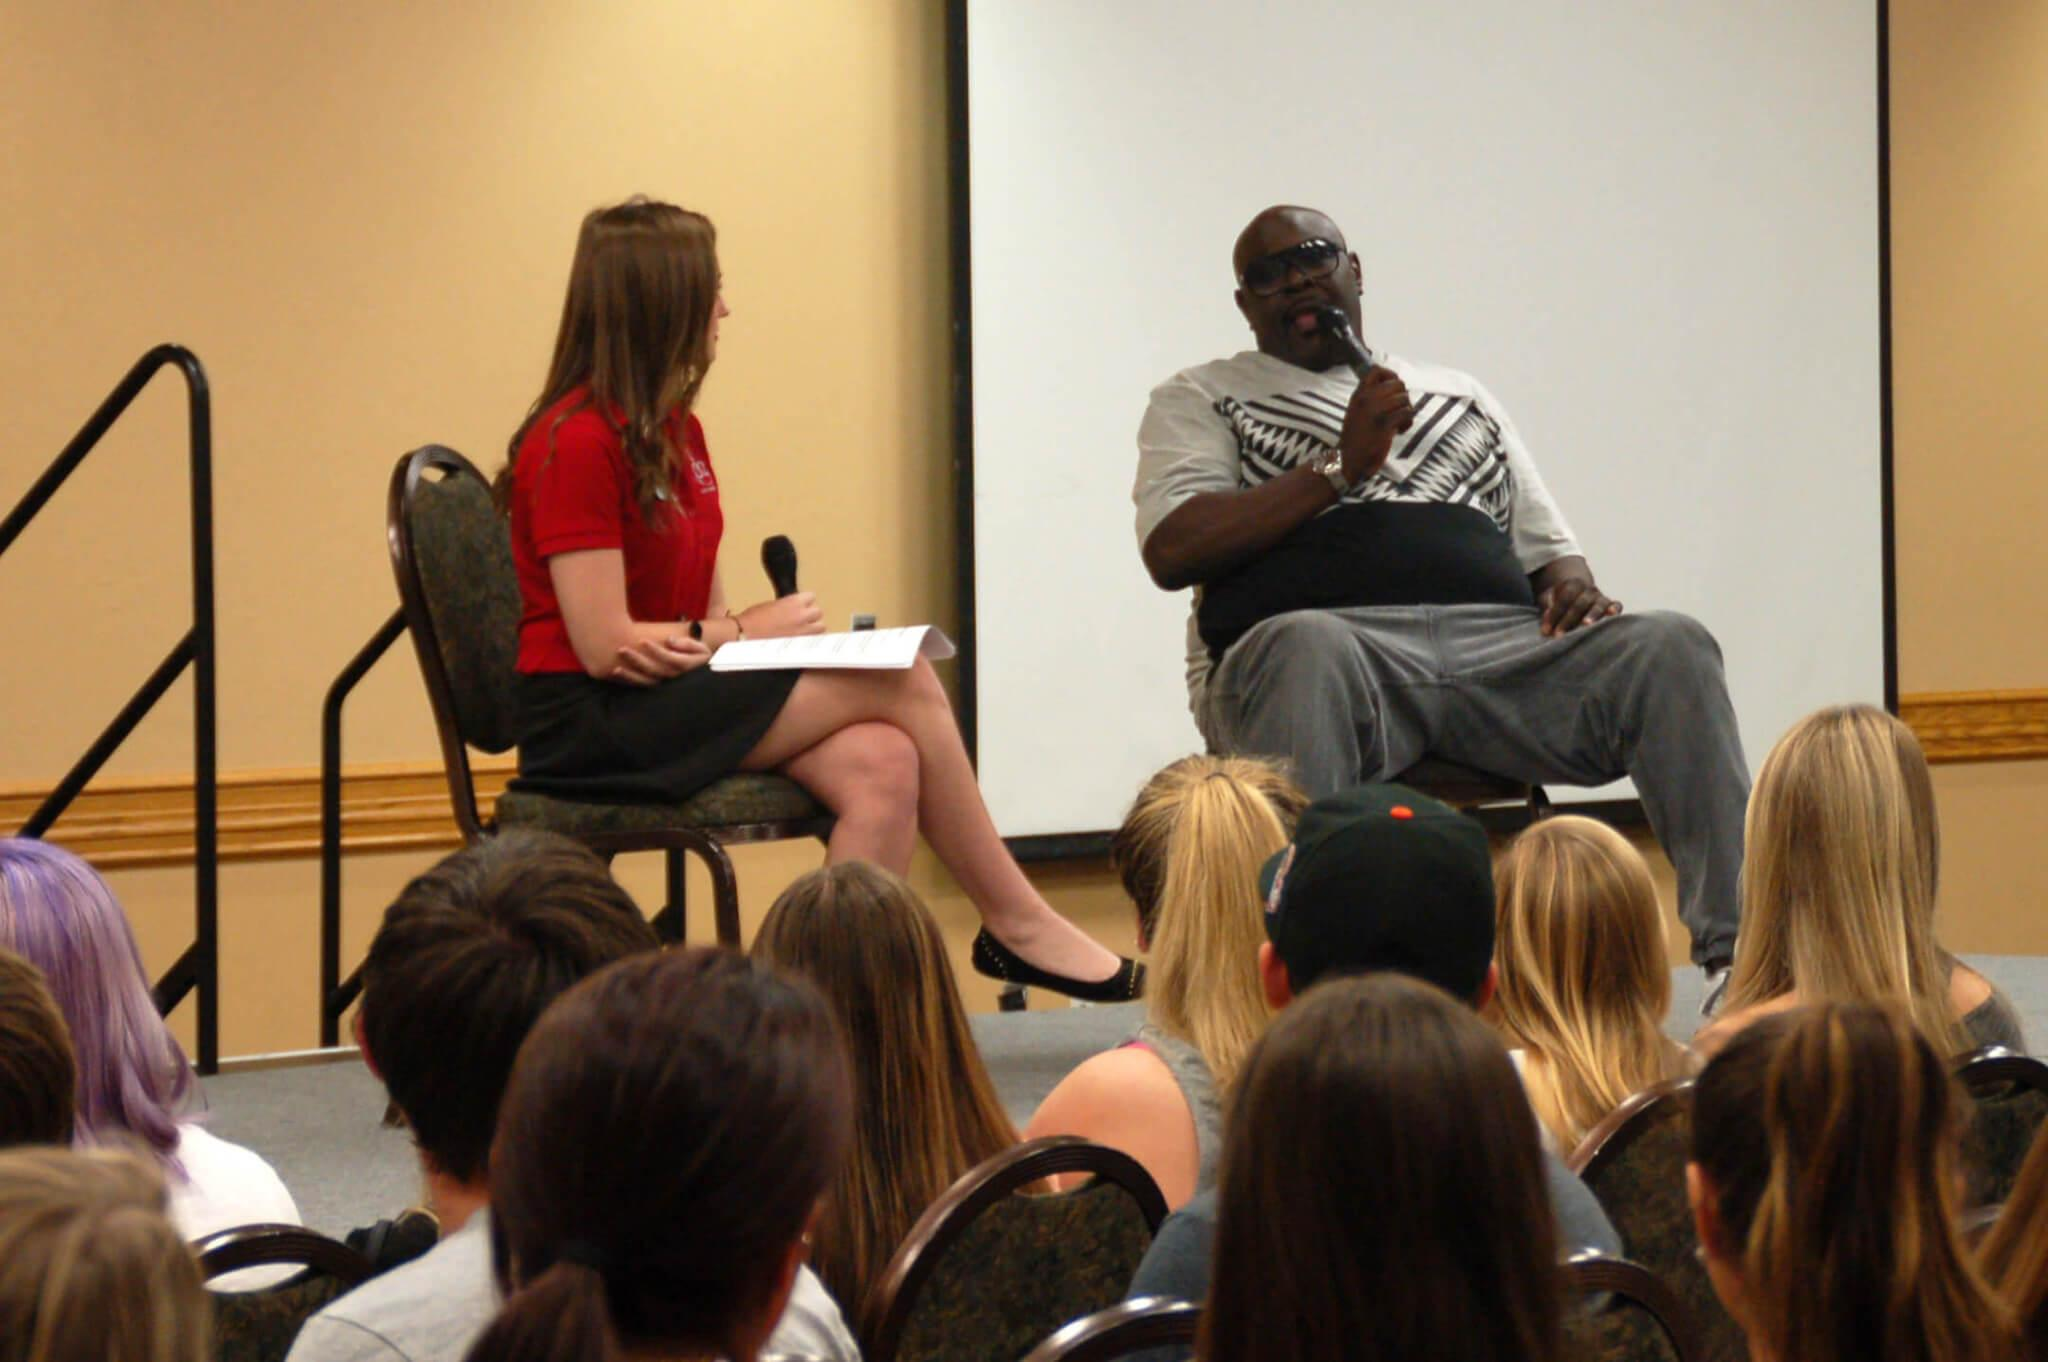 MTV star Big Black does work at FGCU